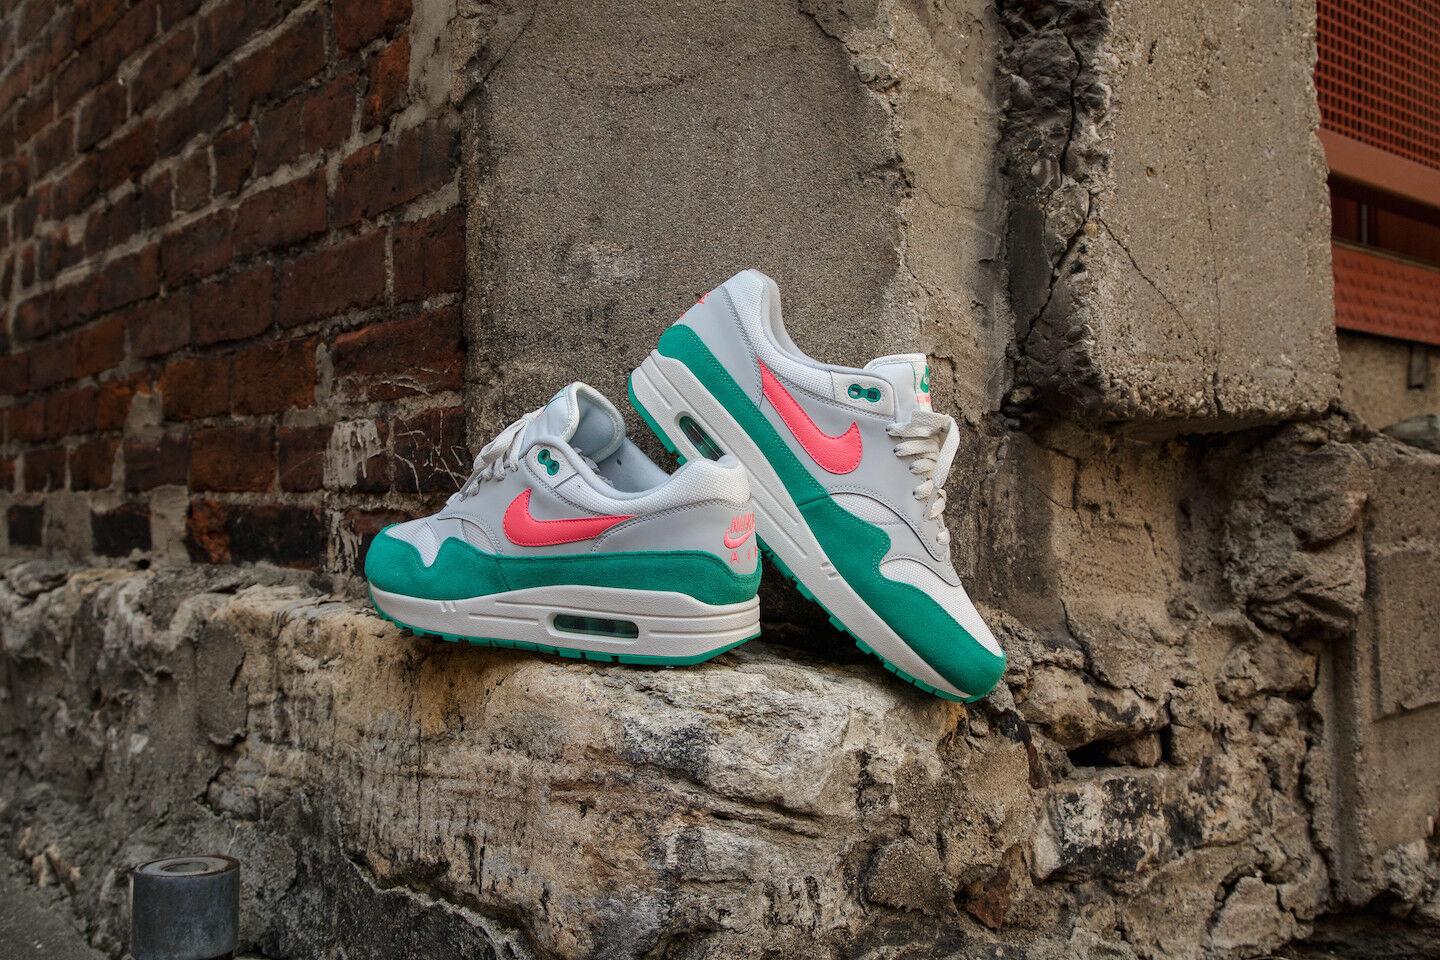 NIKE AIR MAX MAX MAX 1 WATERMELON SUMMIT WHITESUNSET PULSE